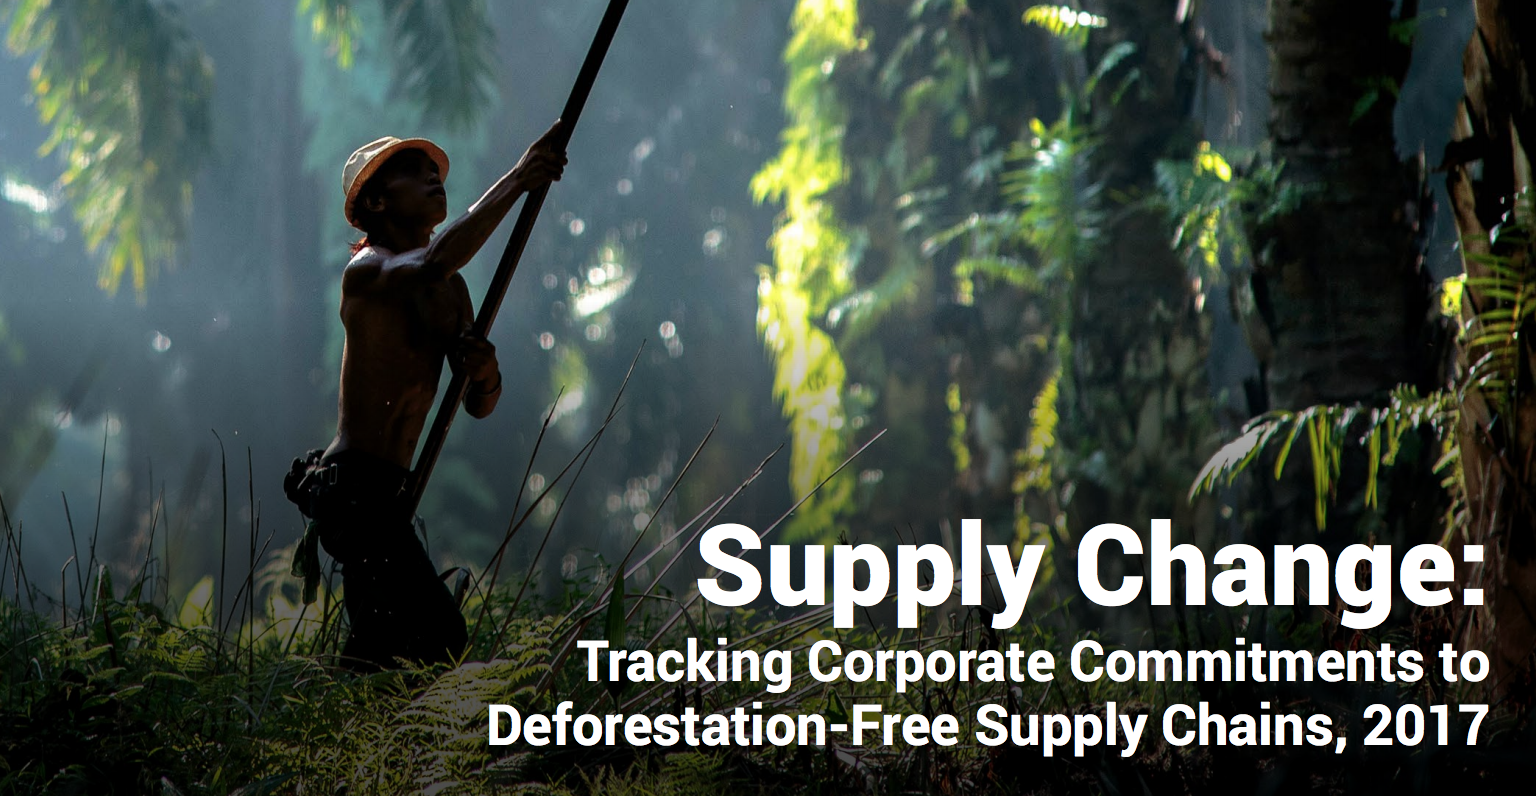 Palm oil is the leading industry in sustainable forestry commitments